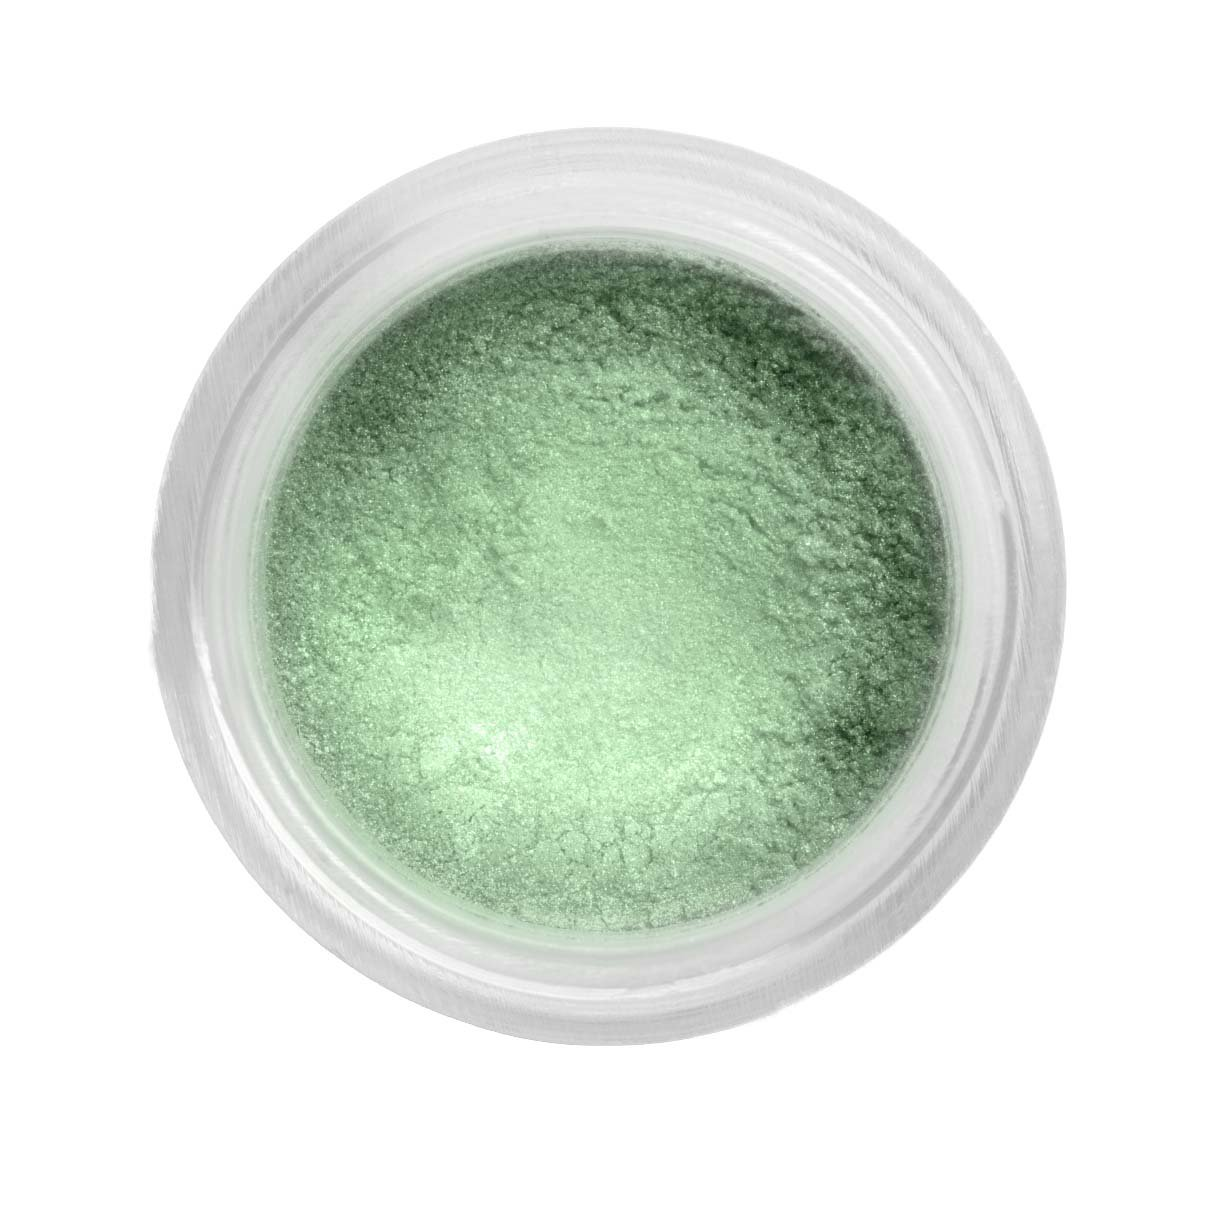 Sheer Miracle Green Loose Color Corrector Concealer / Primer 3 Gram - Neutralizes Redness - Hides Rosacea and Acne - Vegan